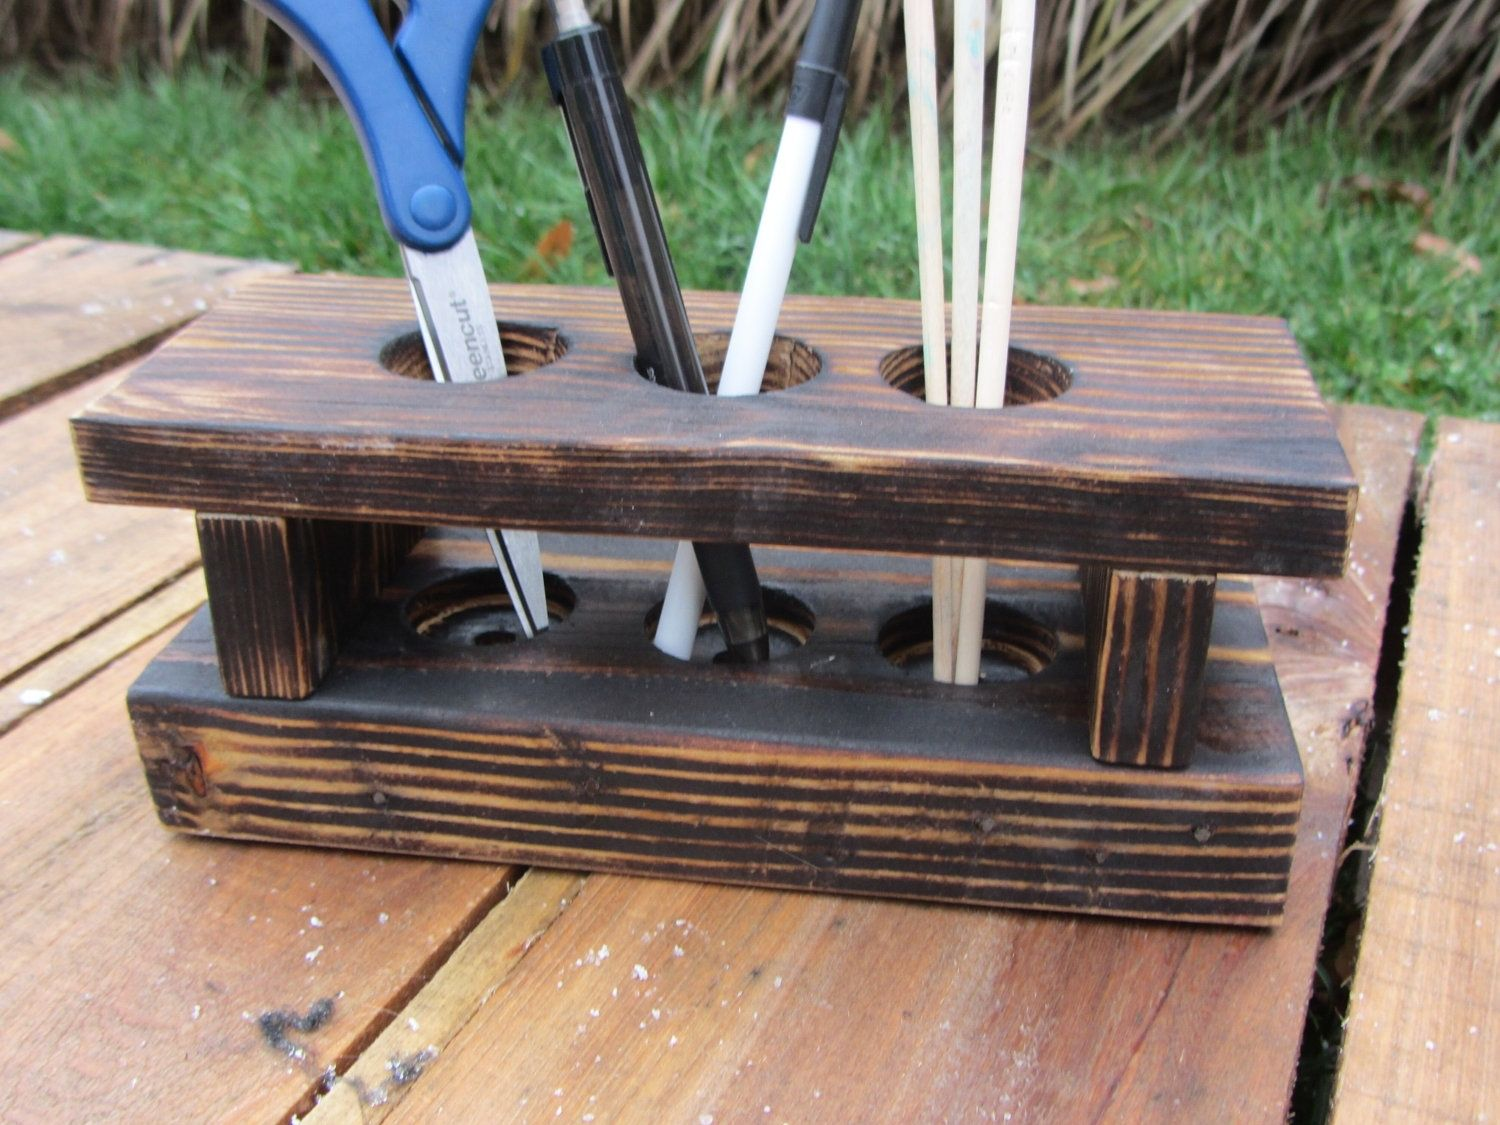 Custom Made Desk Organizer From Reclaimed Wood Pallets Caddy